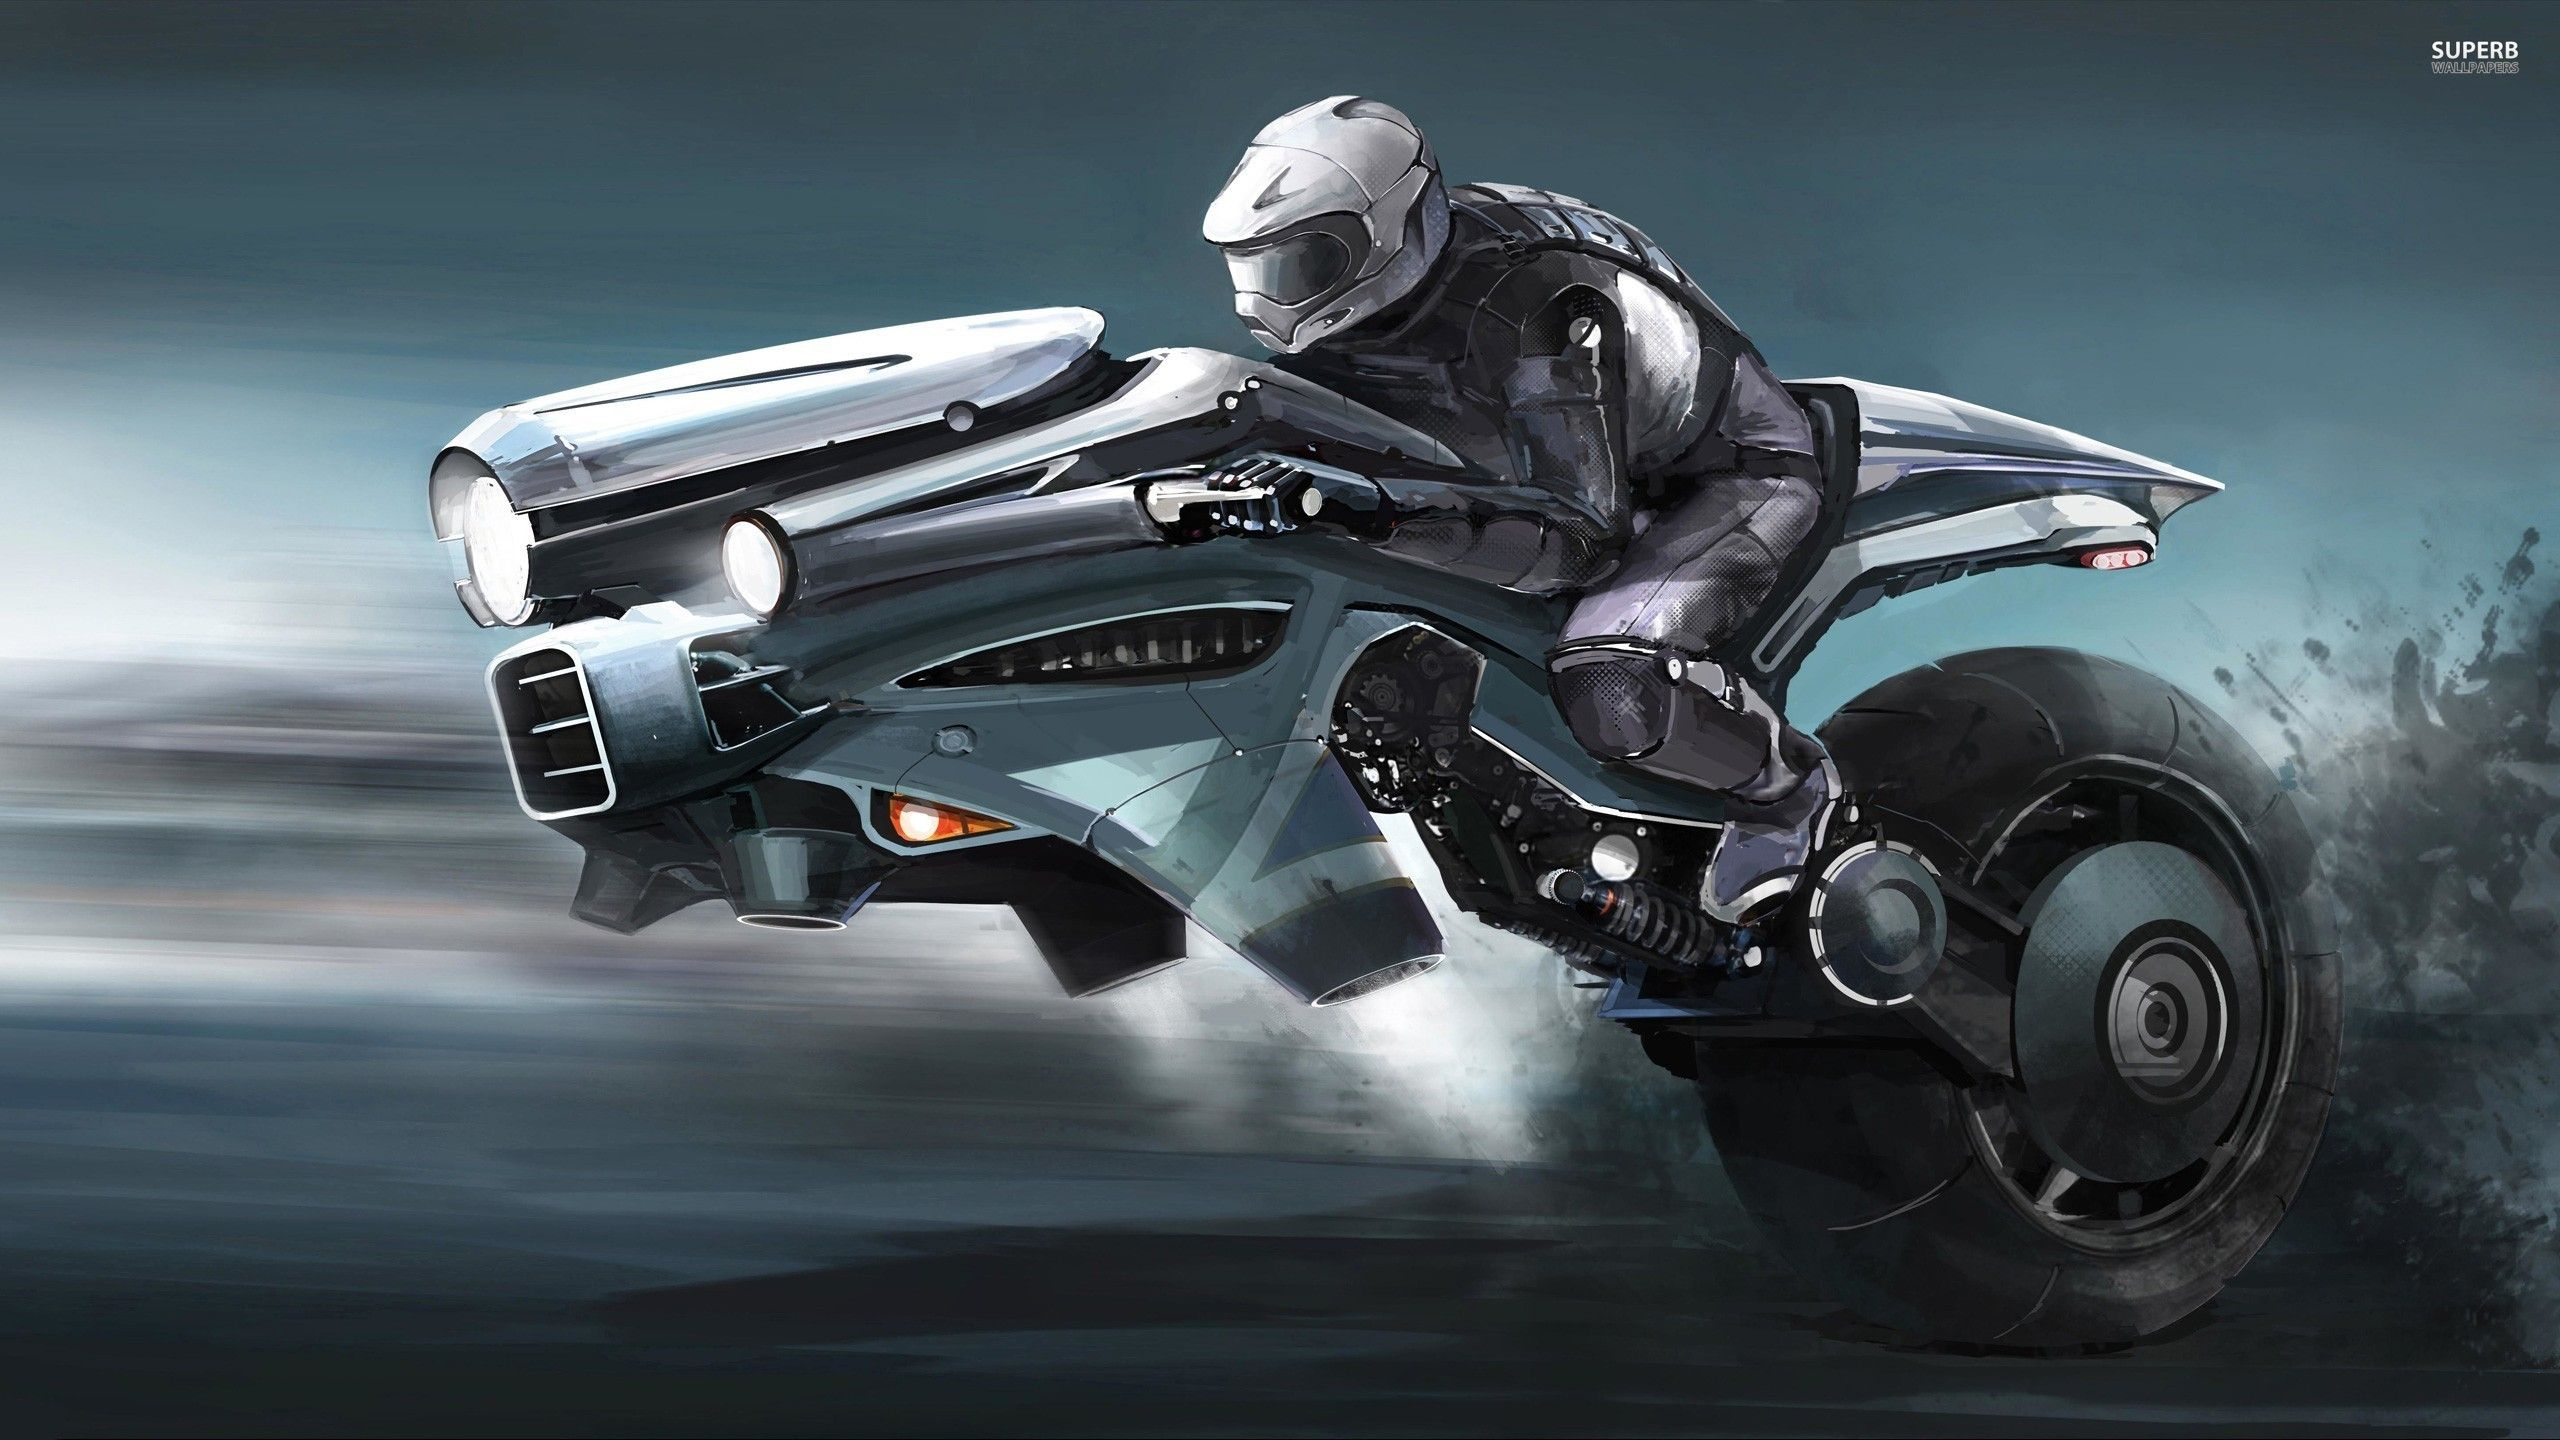 Flying Motorcycle Of The Future Background 1 Hd Wallpapers Futuristic Motorcycle Futuristic Cars Motorcycle Design